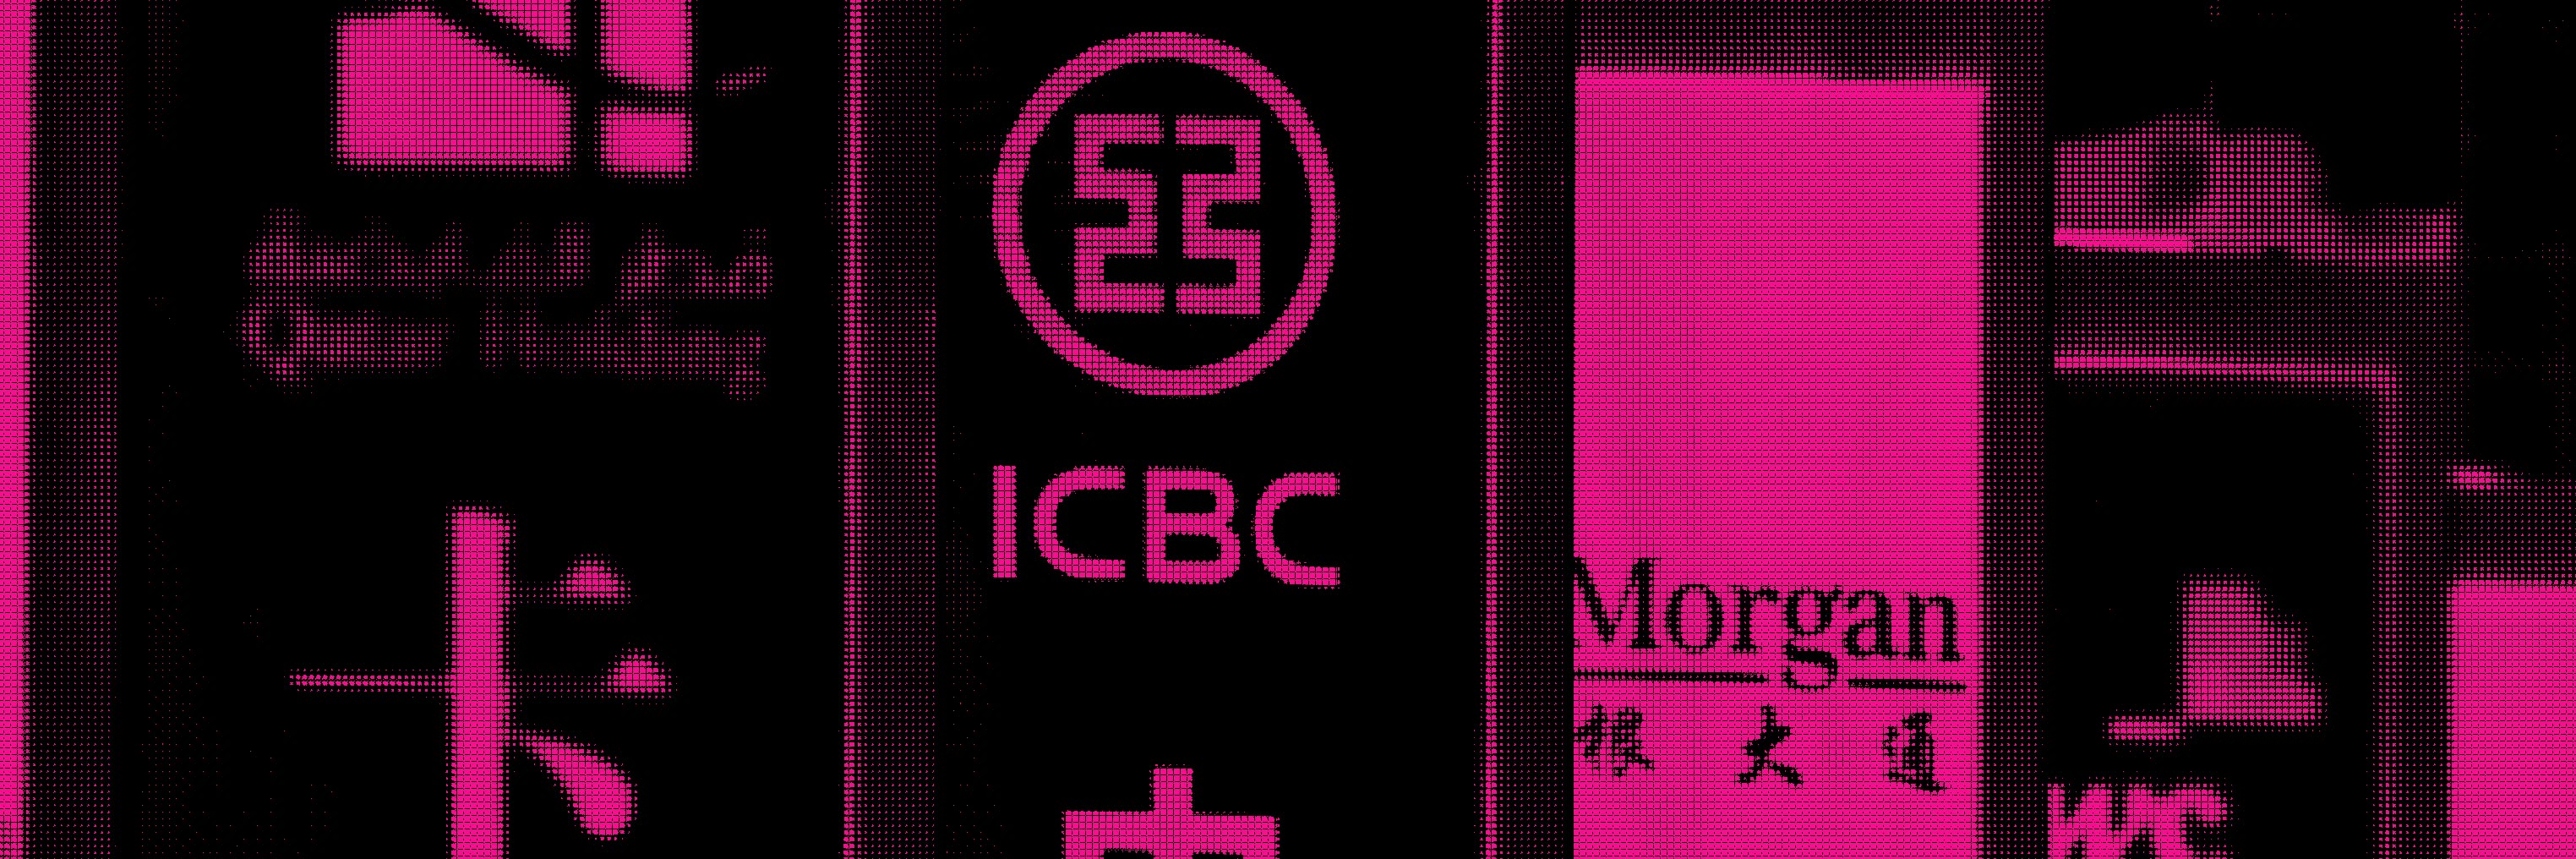 JPMorgan Enters China to Take On the World's Biggest Bank